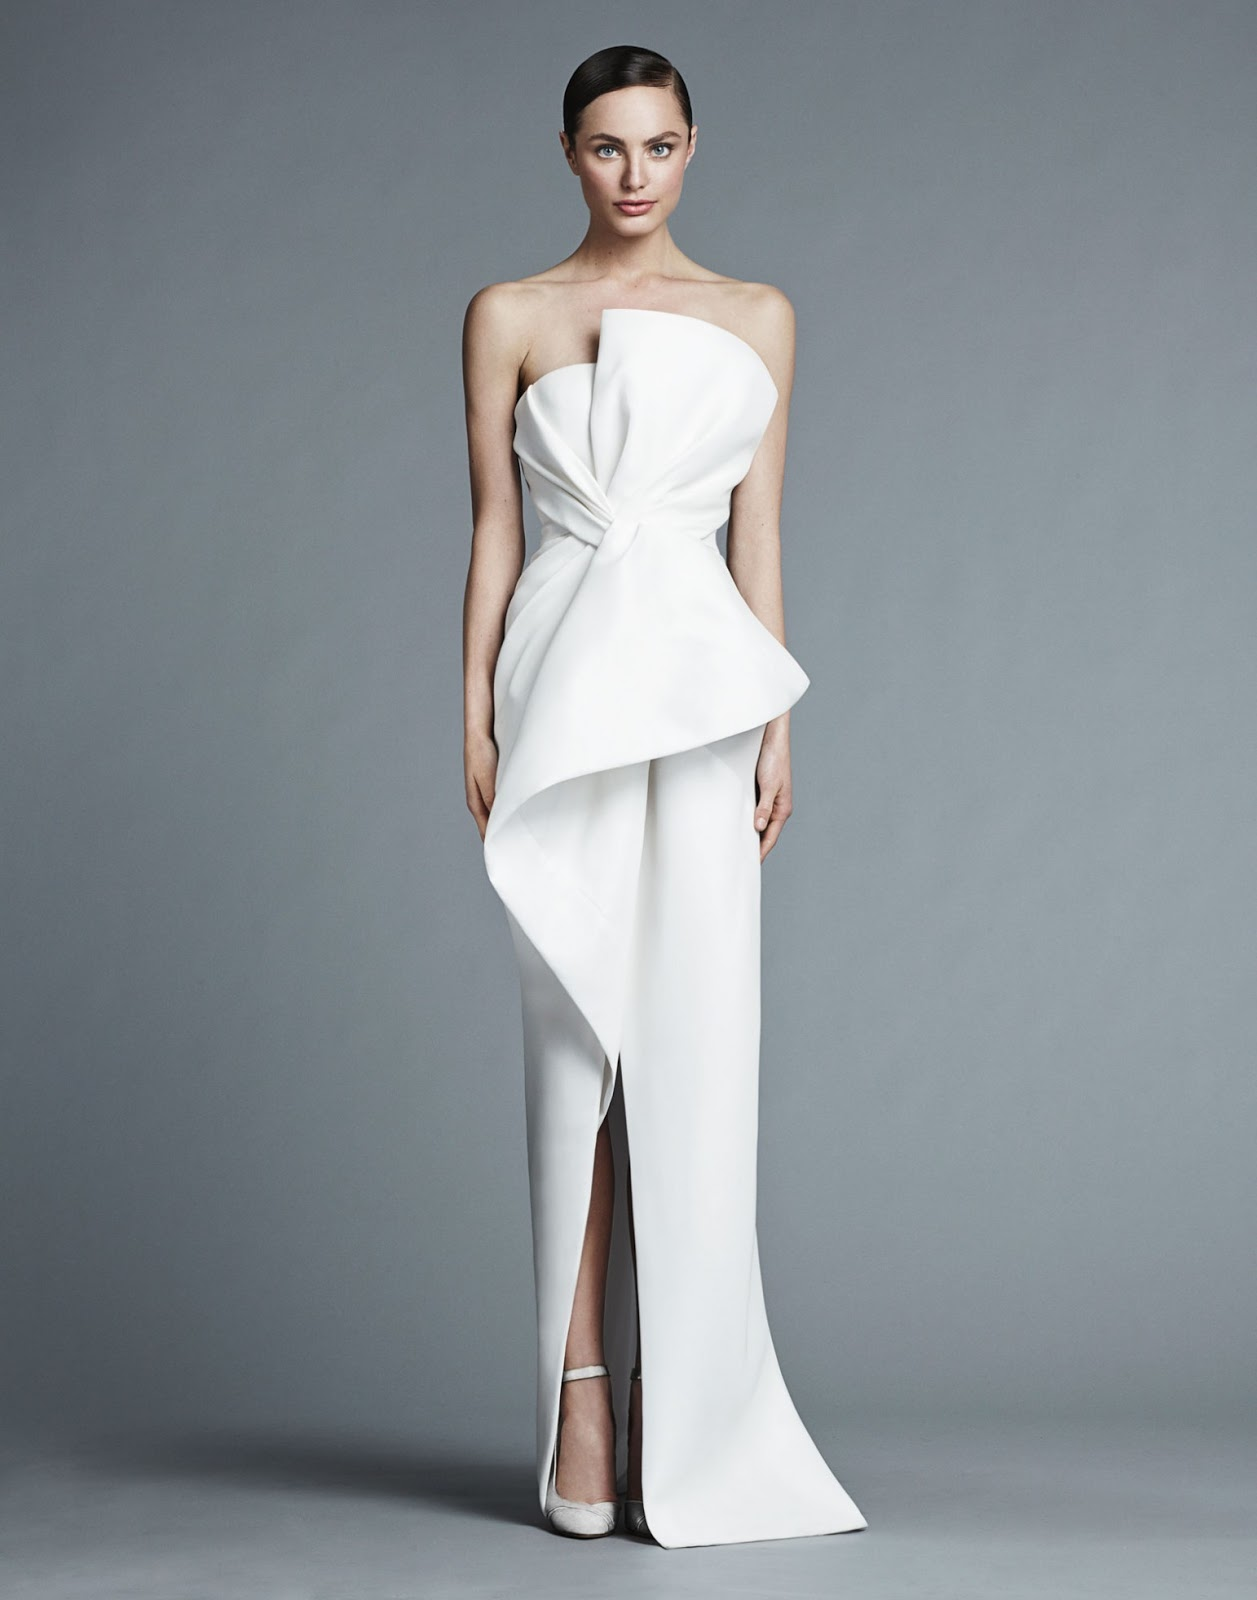 Fashion: Wedding Dresses Trends for 2015 | Beauty Frontline